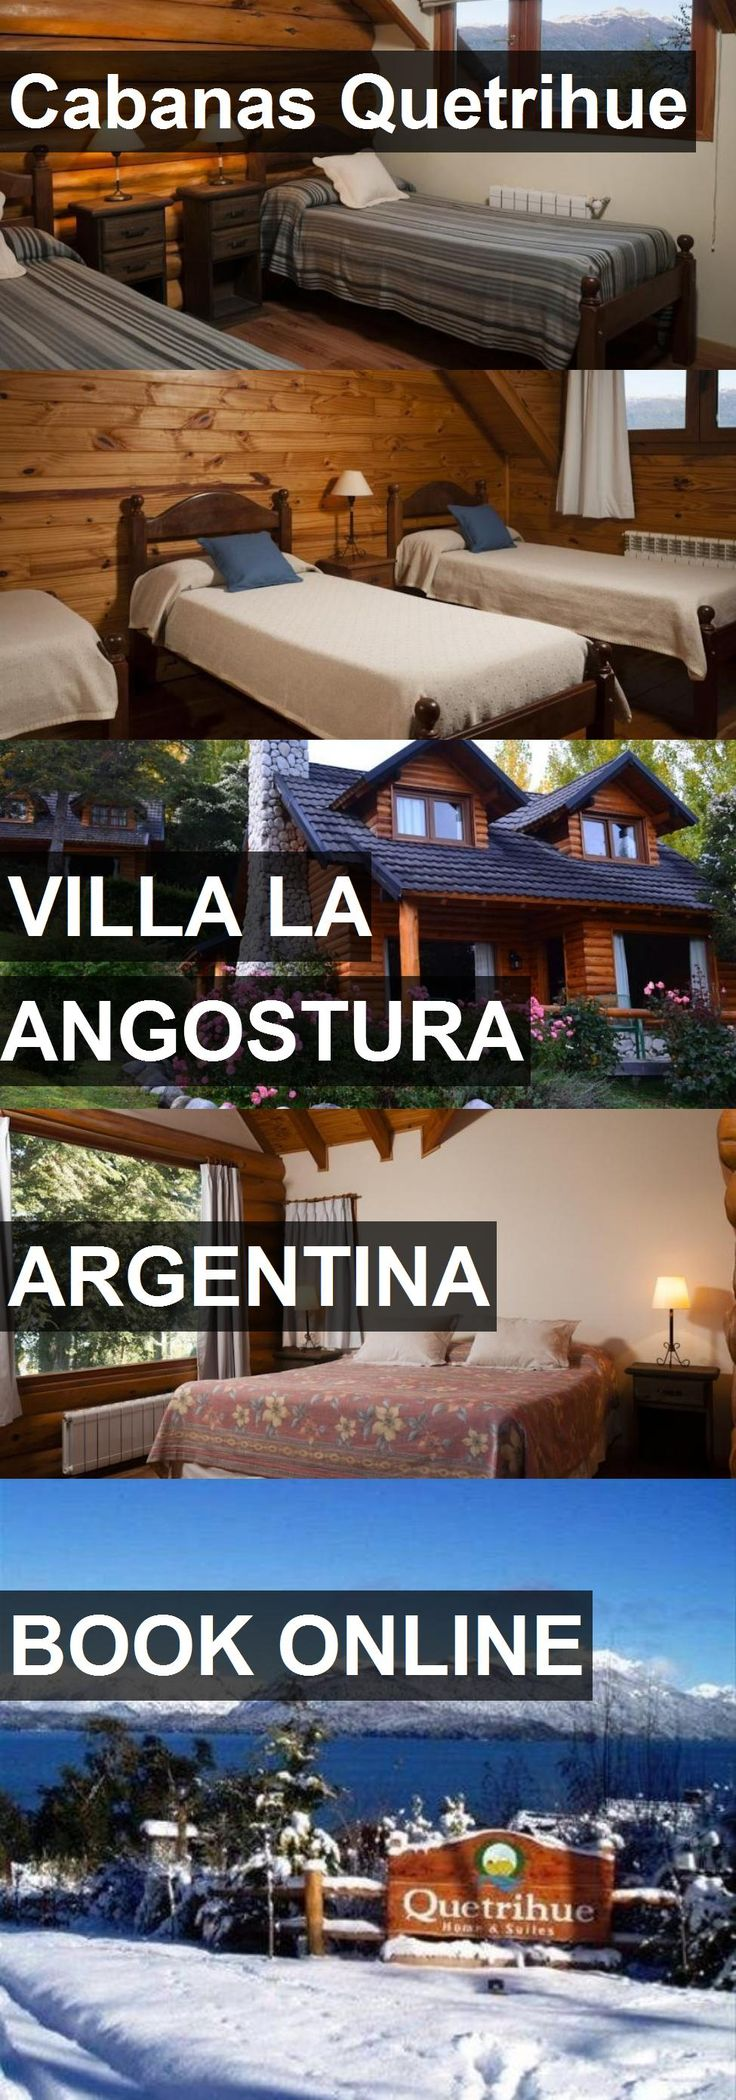 Hotel Cabanas Quetrihue in Villa la Angostura, Argentina. For more information, photos, reviews and best prices please follow the link. #Argentina #VillalaAngostura #travel #vacation #hotel